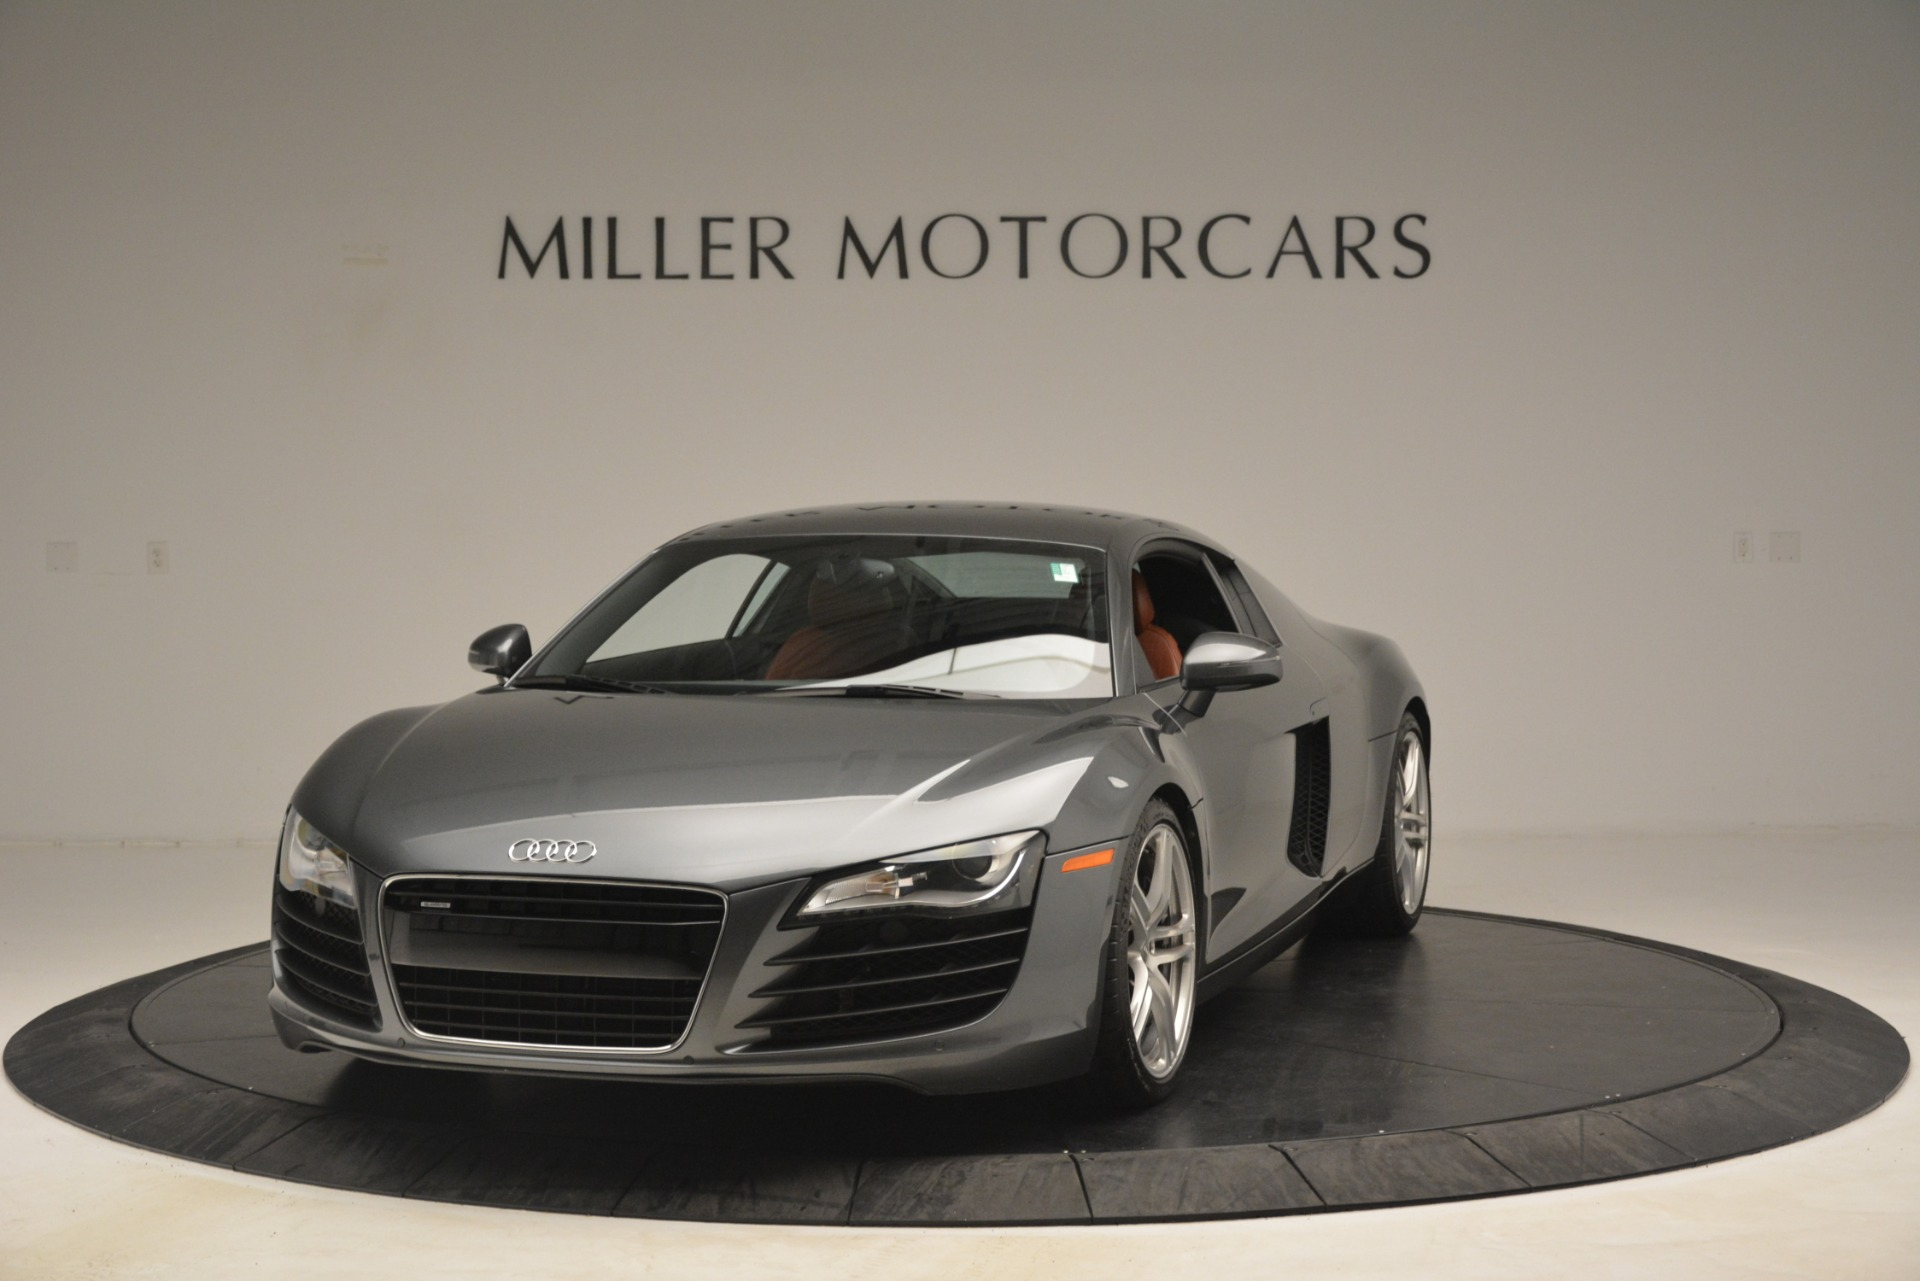 Used 2009 Audi R8 quattro for sale Sold at Pagani of Greenwich in Greenwich CT 06830 1